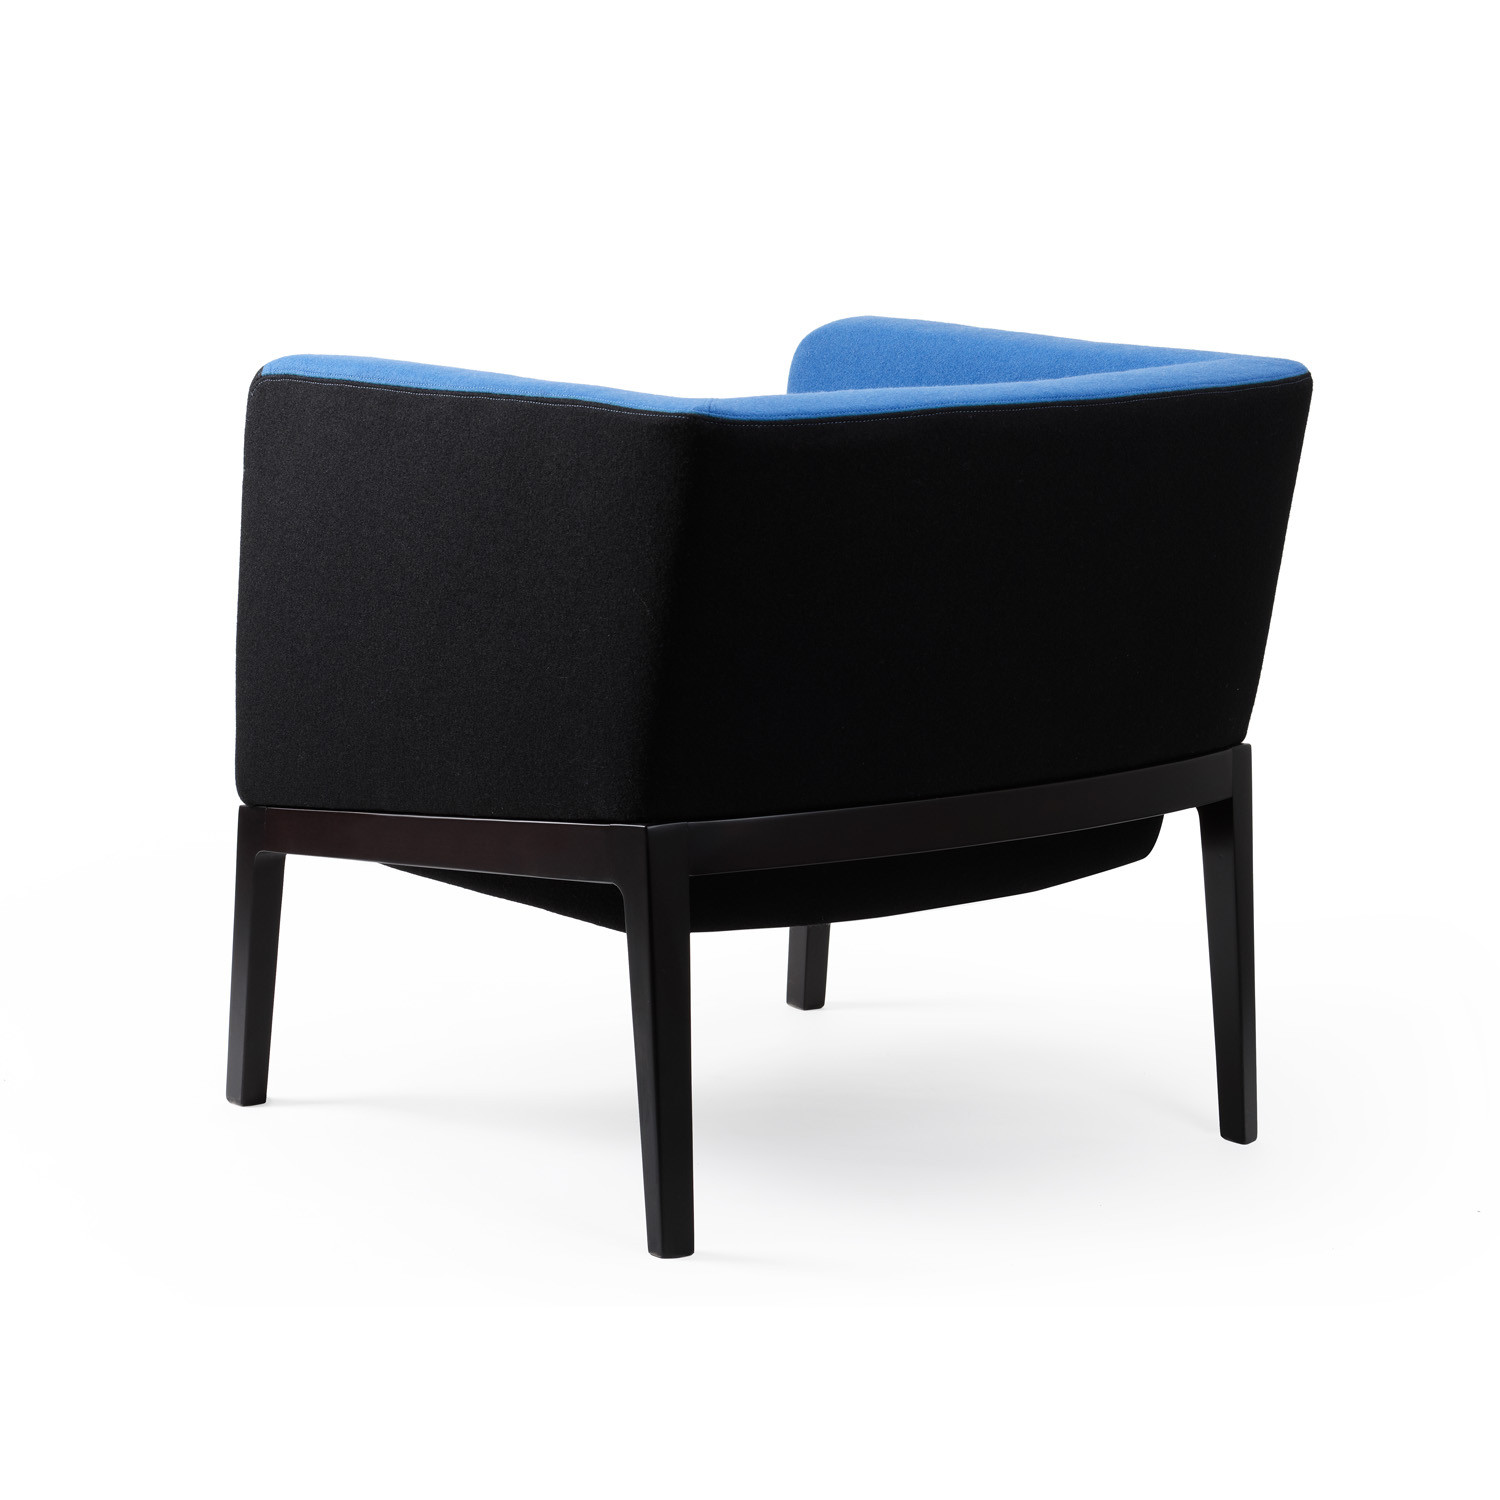 Tonic Lounge Chair from Rossion